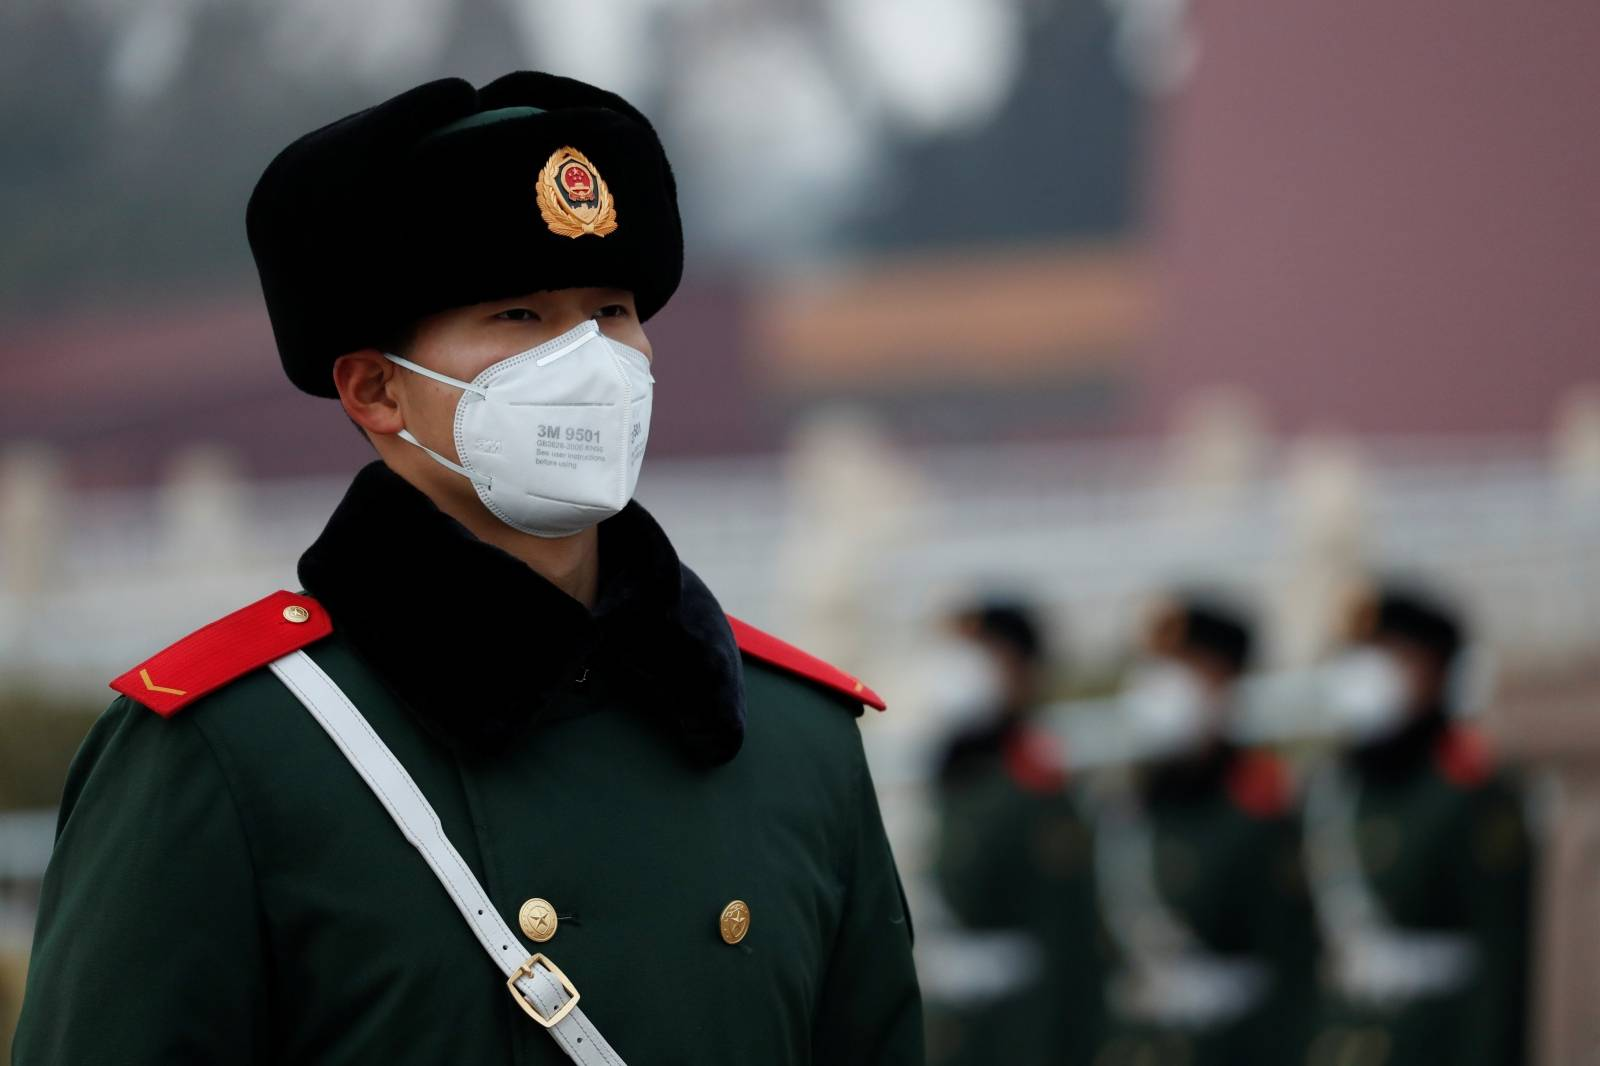 A paramilitary officer wearing a face masks stands guard at the Tiananmen Gate, as the country is hit by an outbreak of the new coronavirus, in Beijing